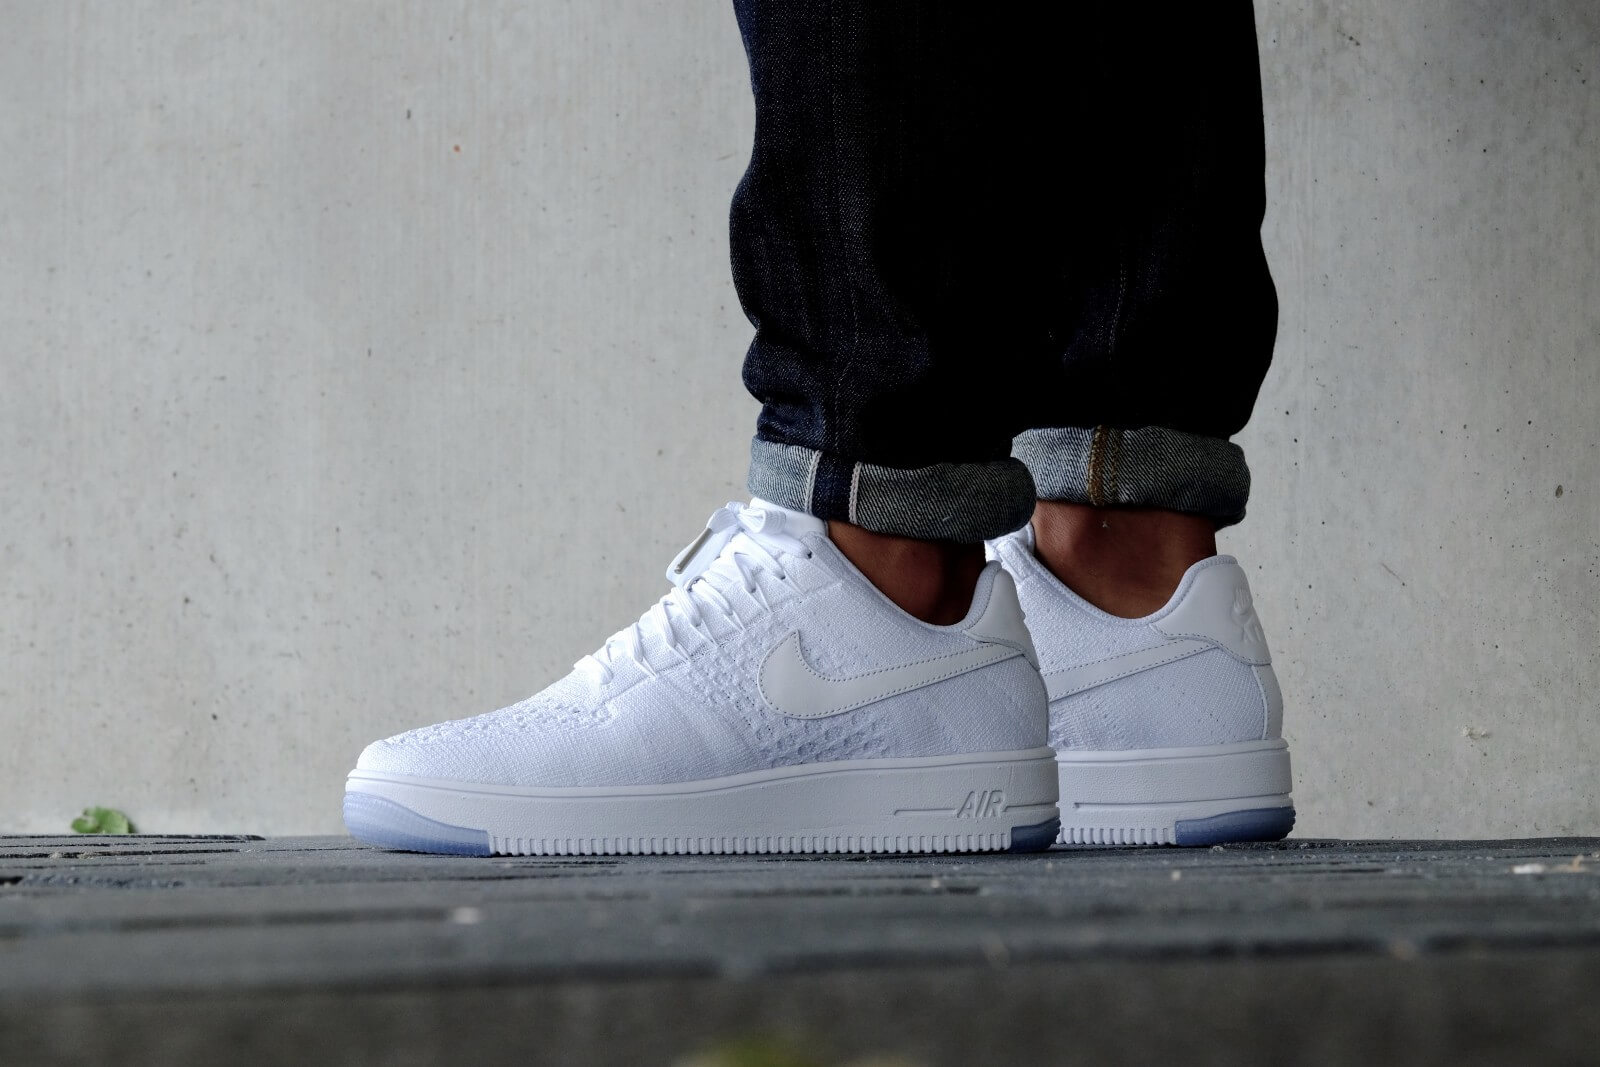 Nike WMNS Air Force 1 Flyknit Low White White 820256 101